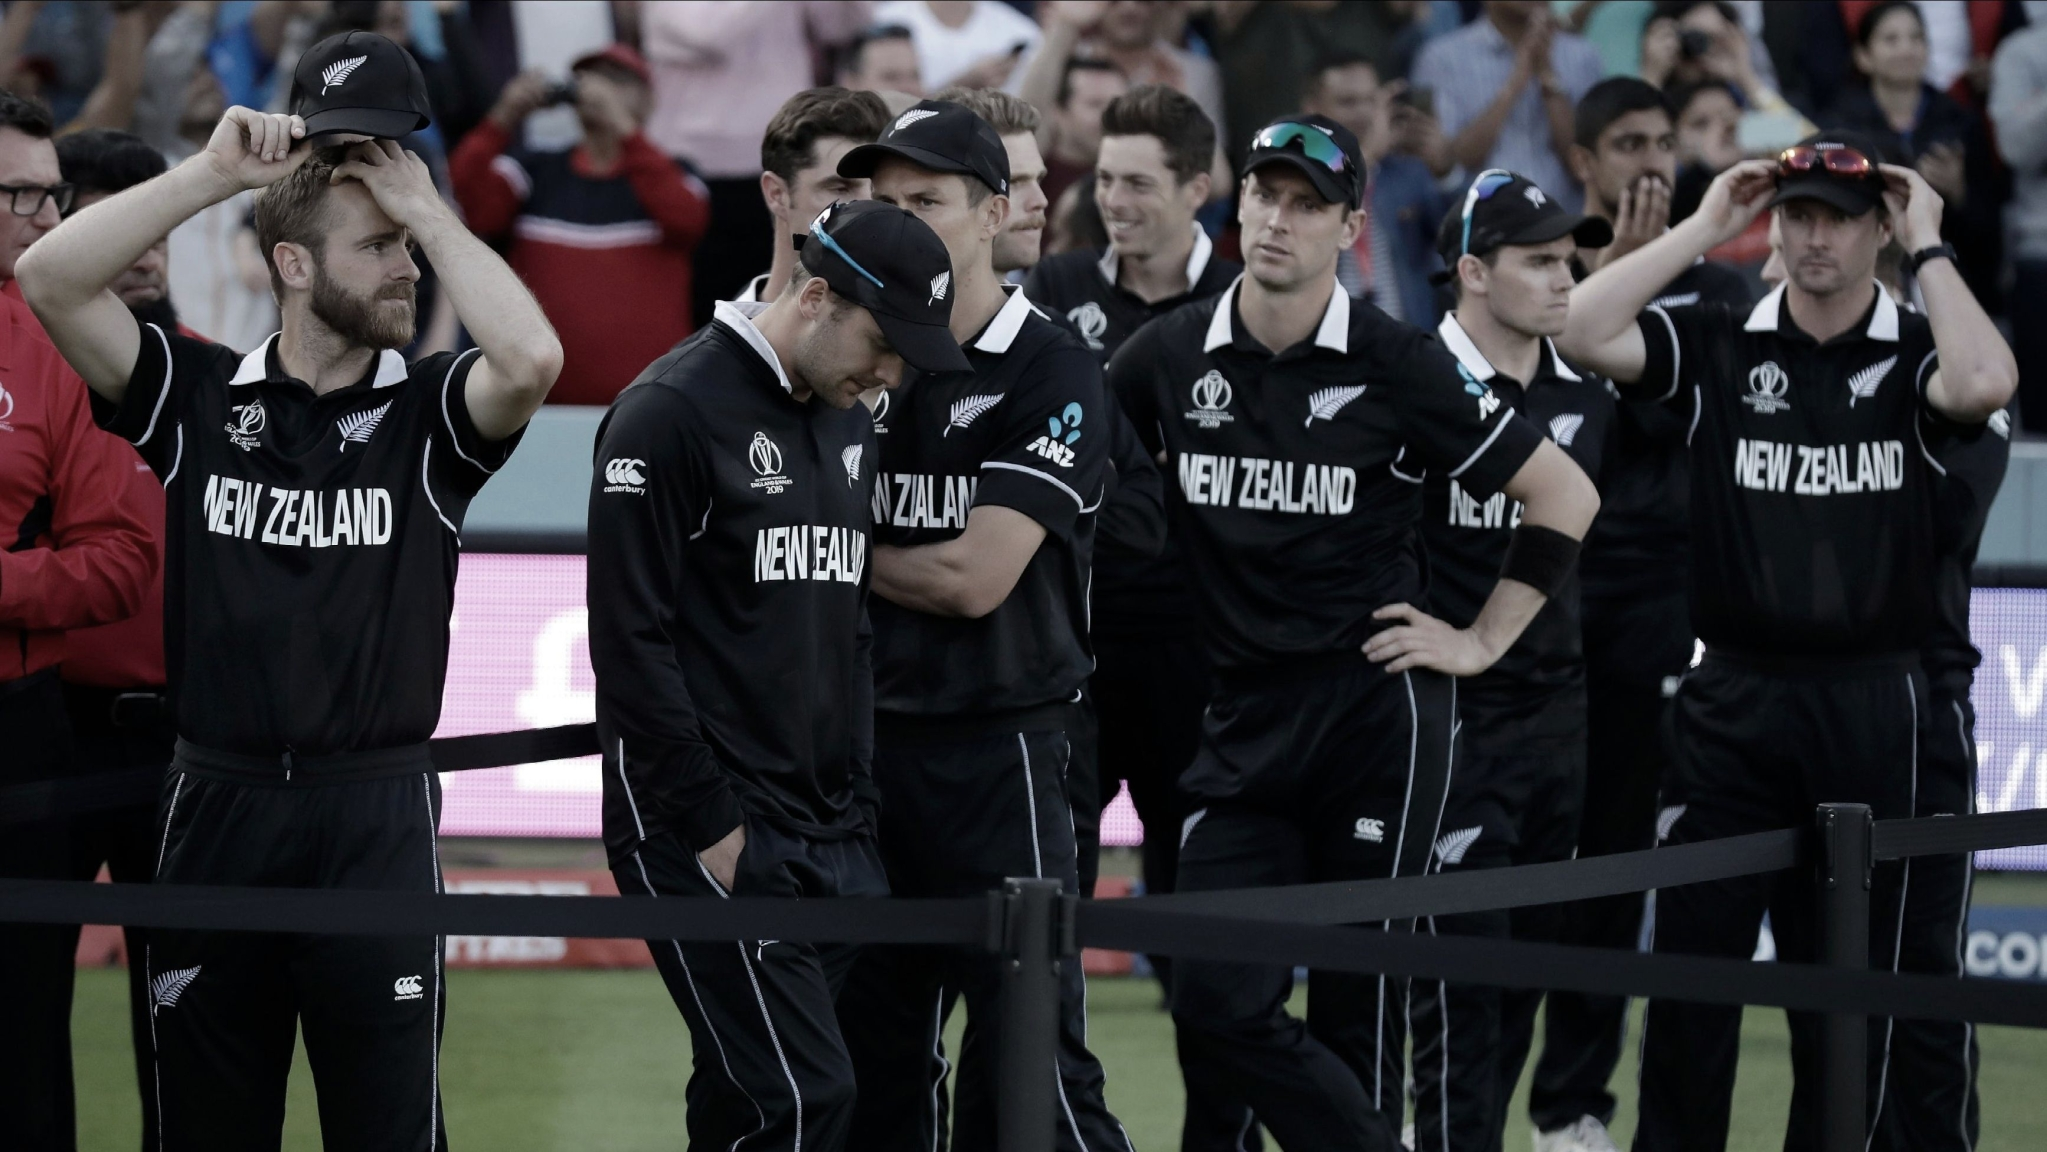 Williamson's New Zealand Deserve More Than Just a 'Runners-Up' Tag